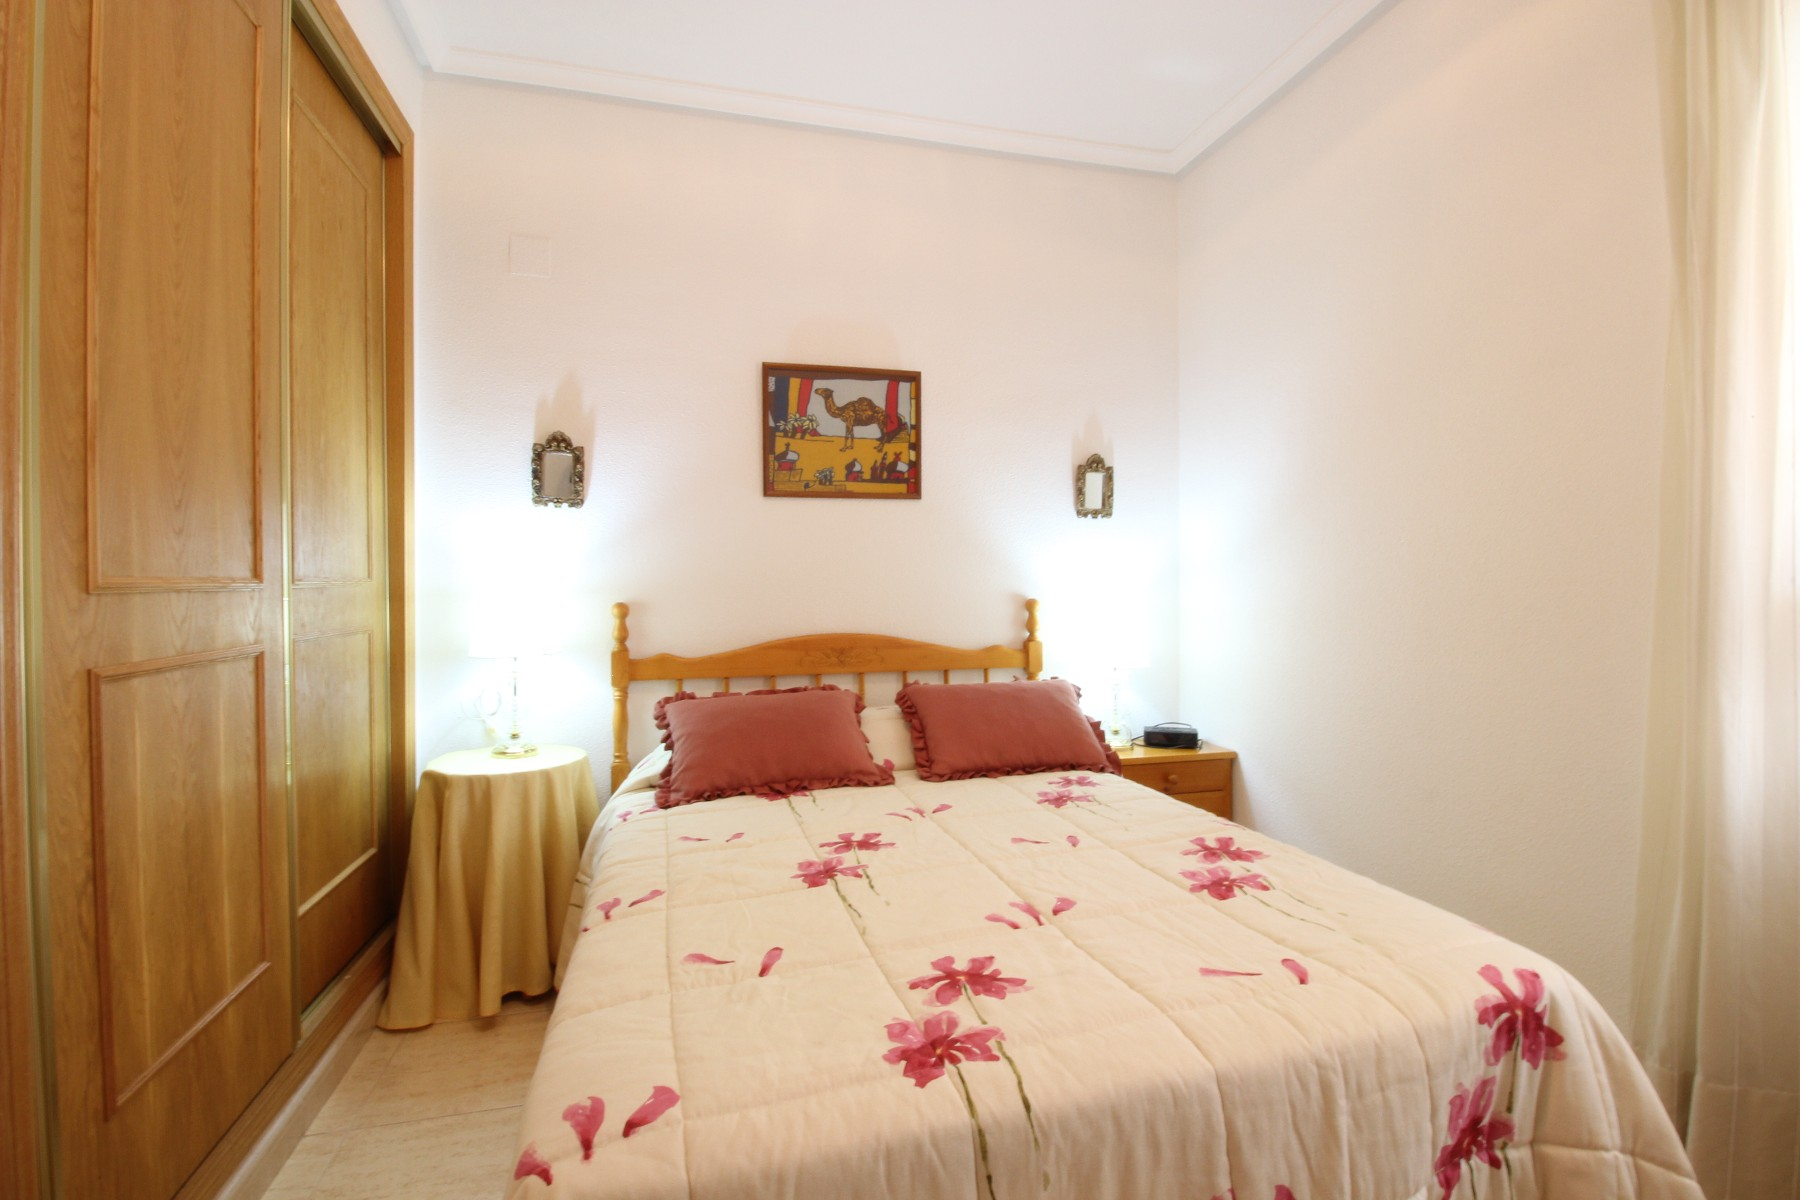 One bedroom apartment perfect for a lovely holidays in Nexus Grupo